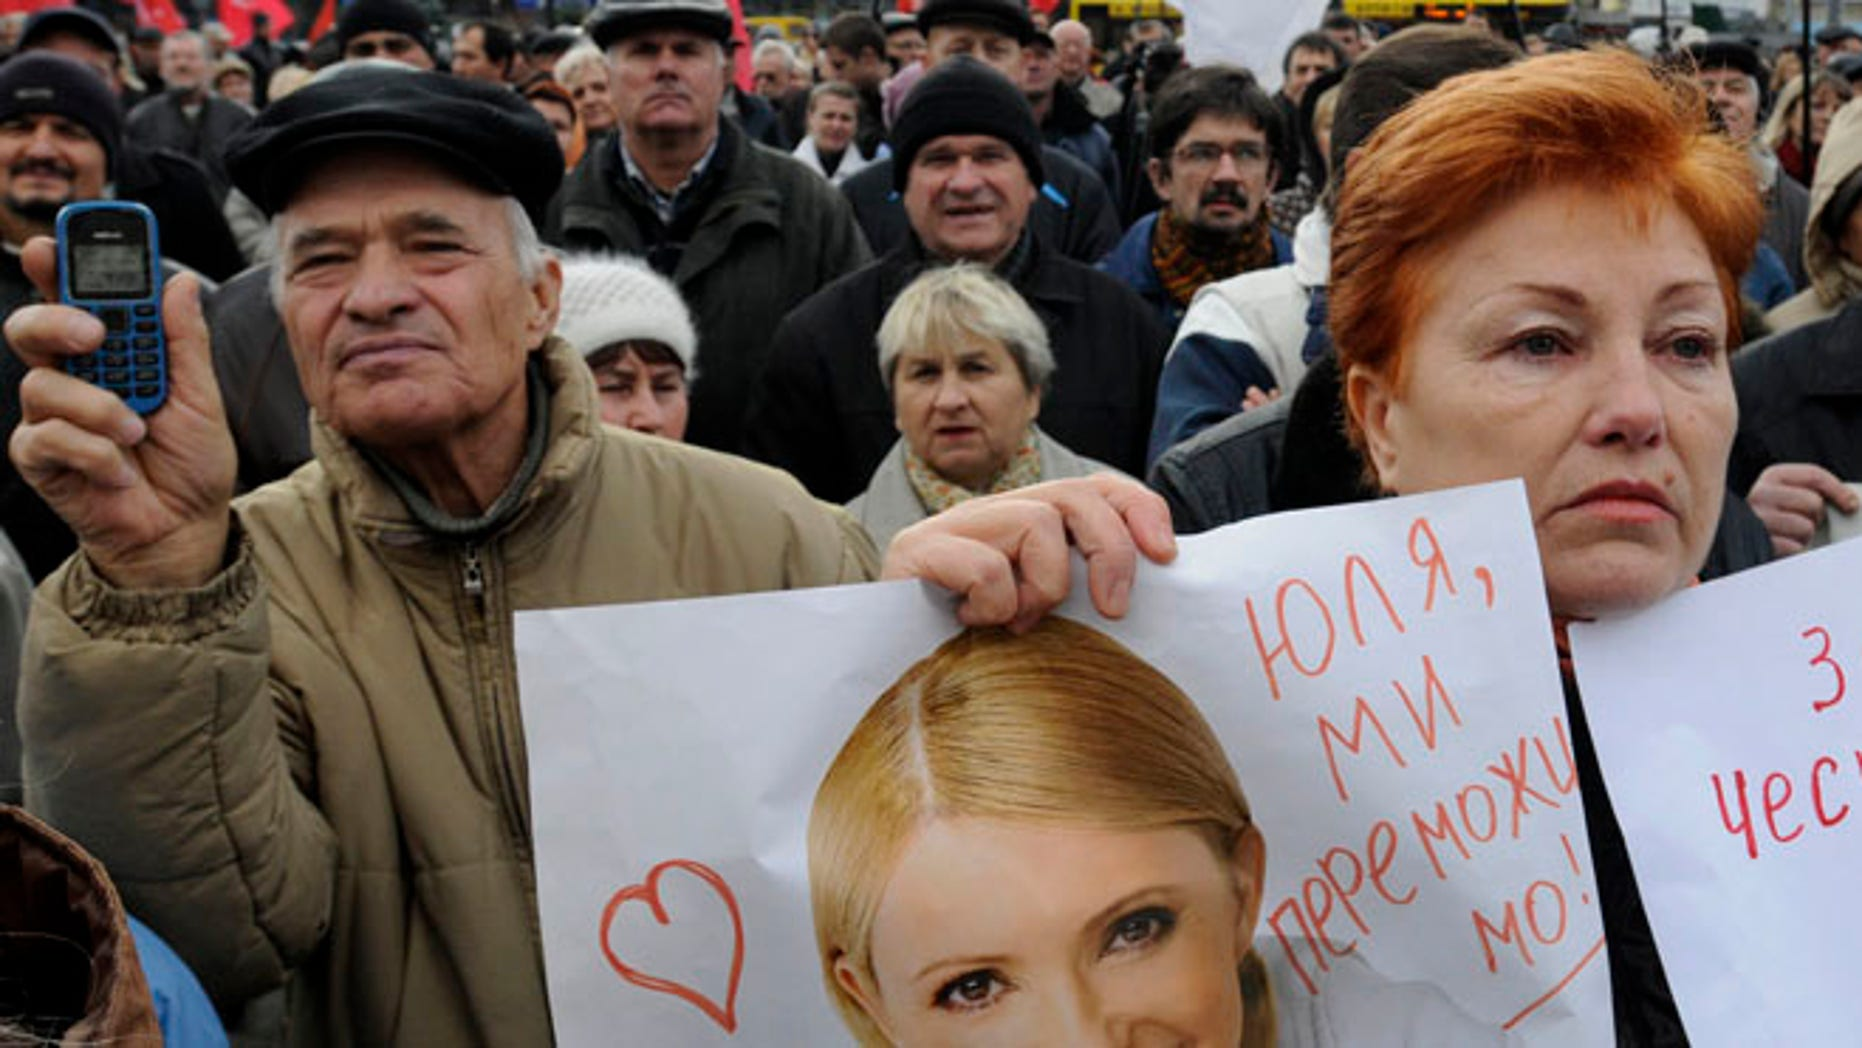 Nov. 6, 2012: Supporters of the Ukrainian Opposition party take part in a rally outside the Central Elections Commission building in Kiev, Ukraine.